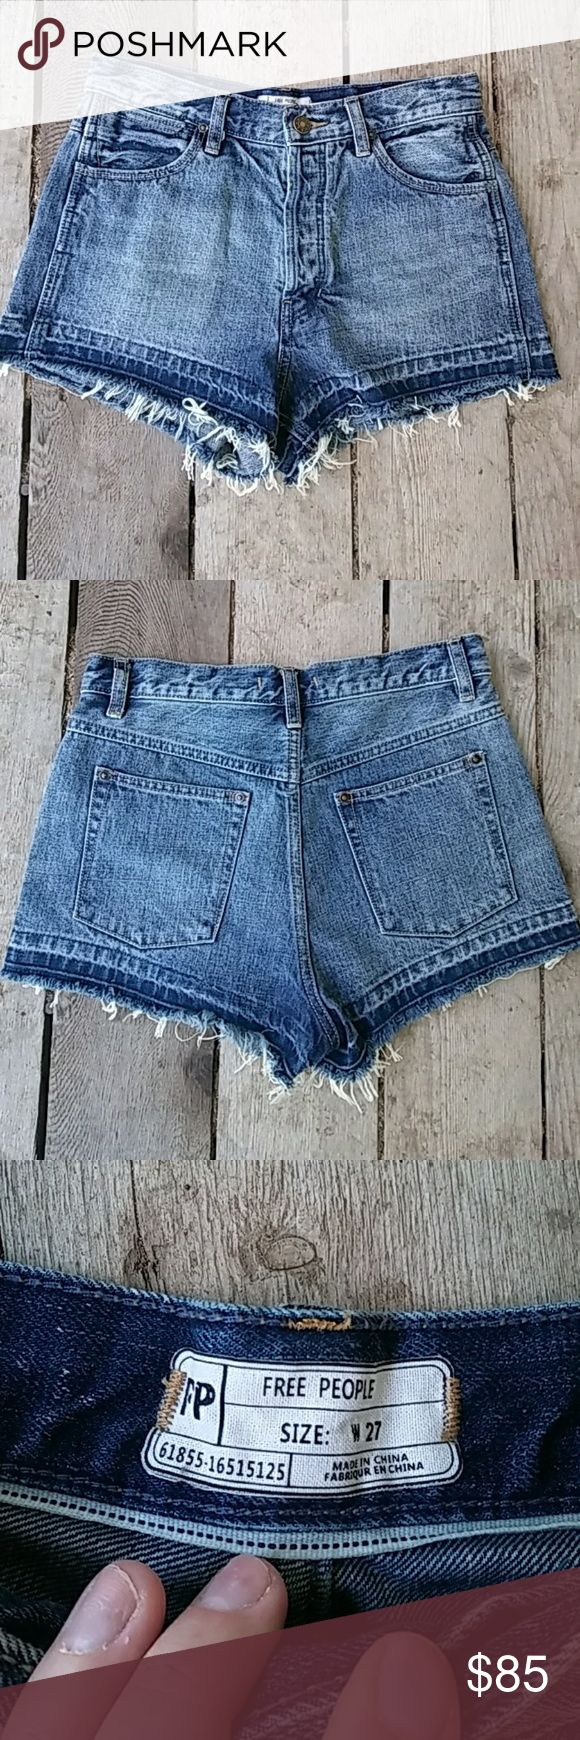 Free People Shorts Free People Jran Shorts With fraying at the bottom Free People Shorts Jean Shorts